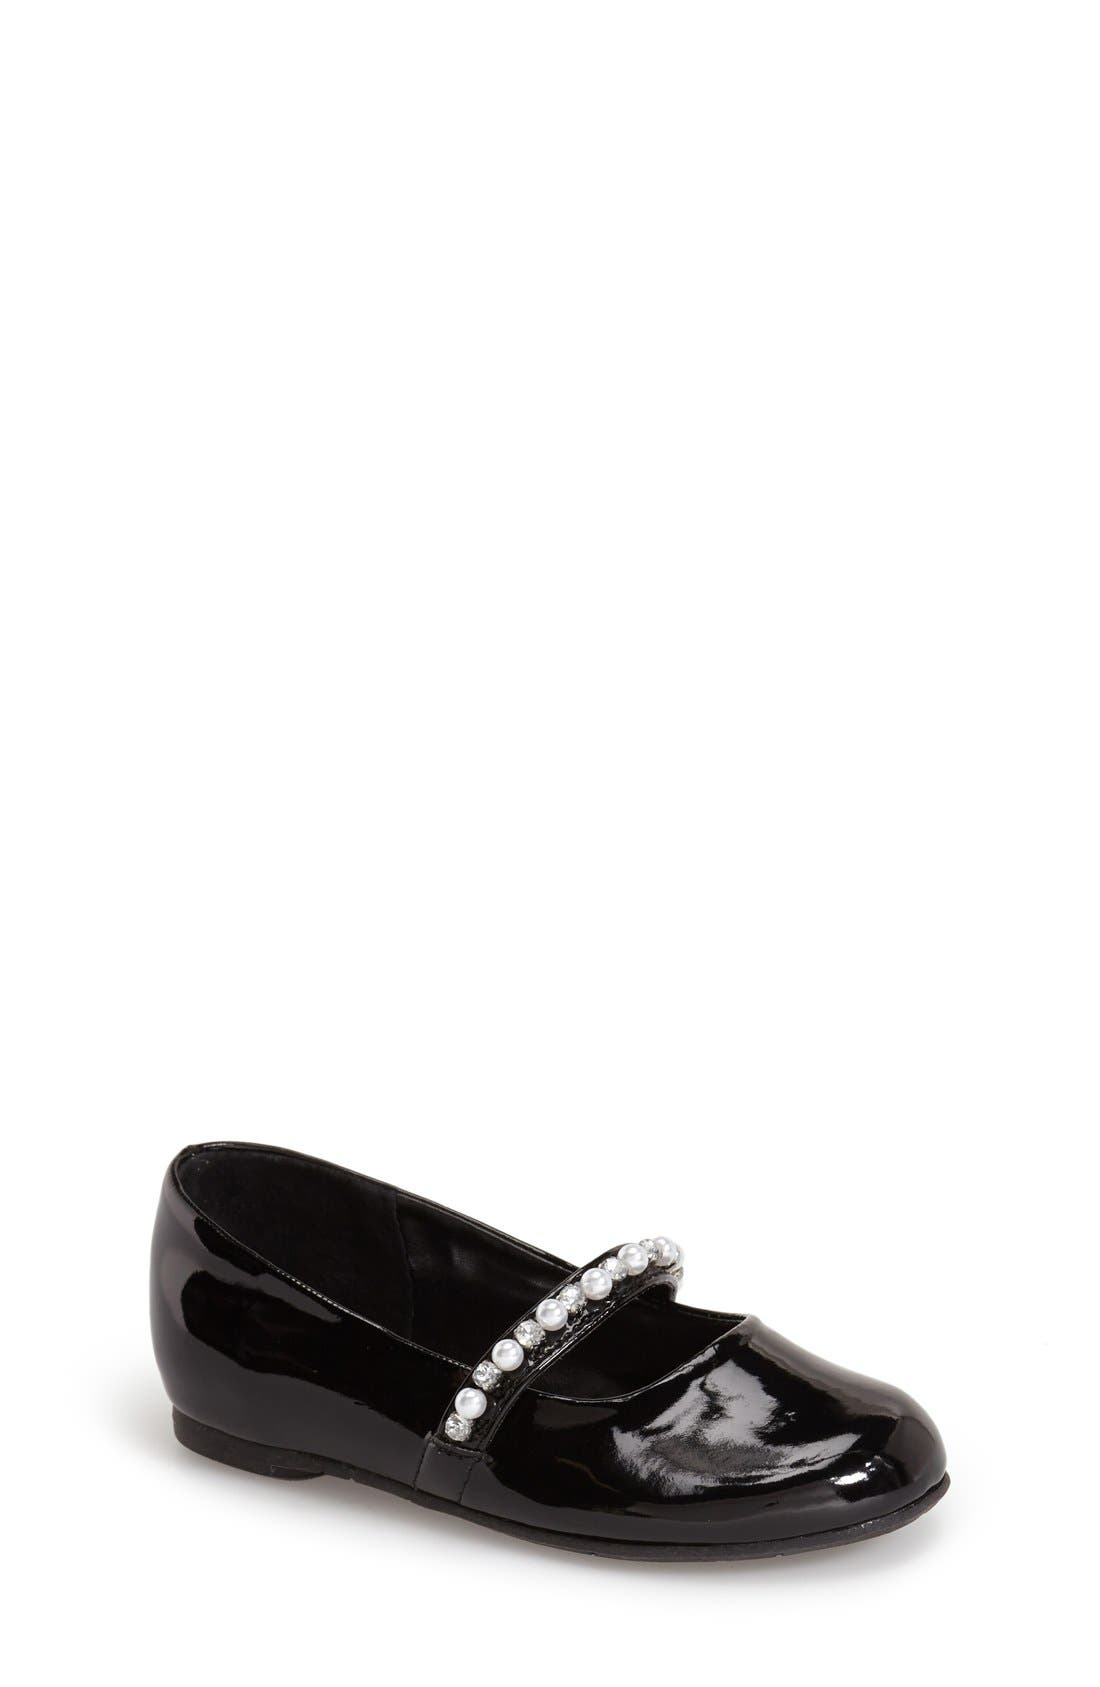 'Nataly' Slip-On,                             Main thumbnail 1, color,                             BLACK PATENT